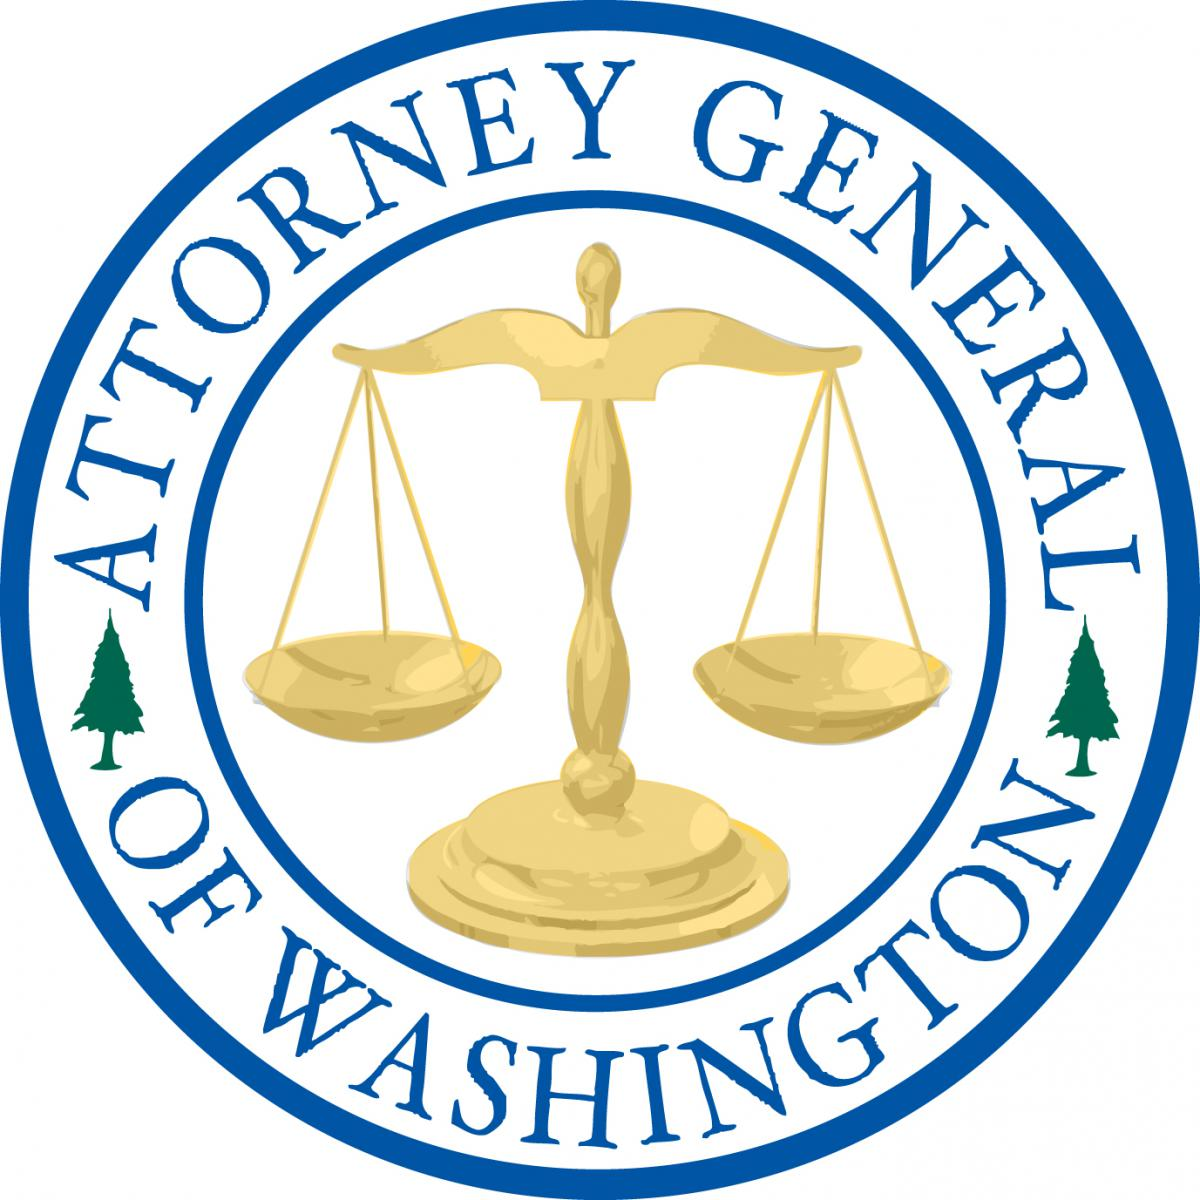 Washington-AGO-Color-Seal.jpg